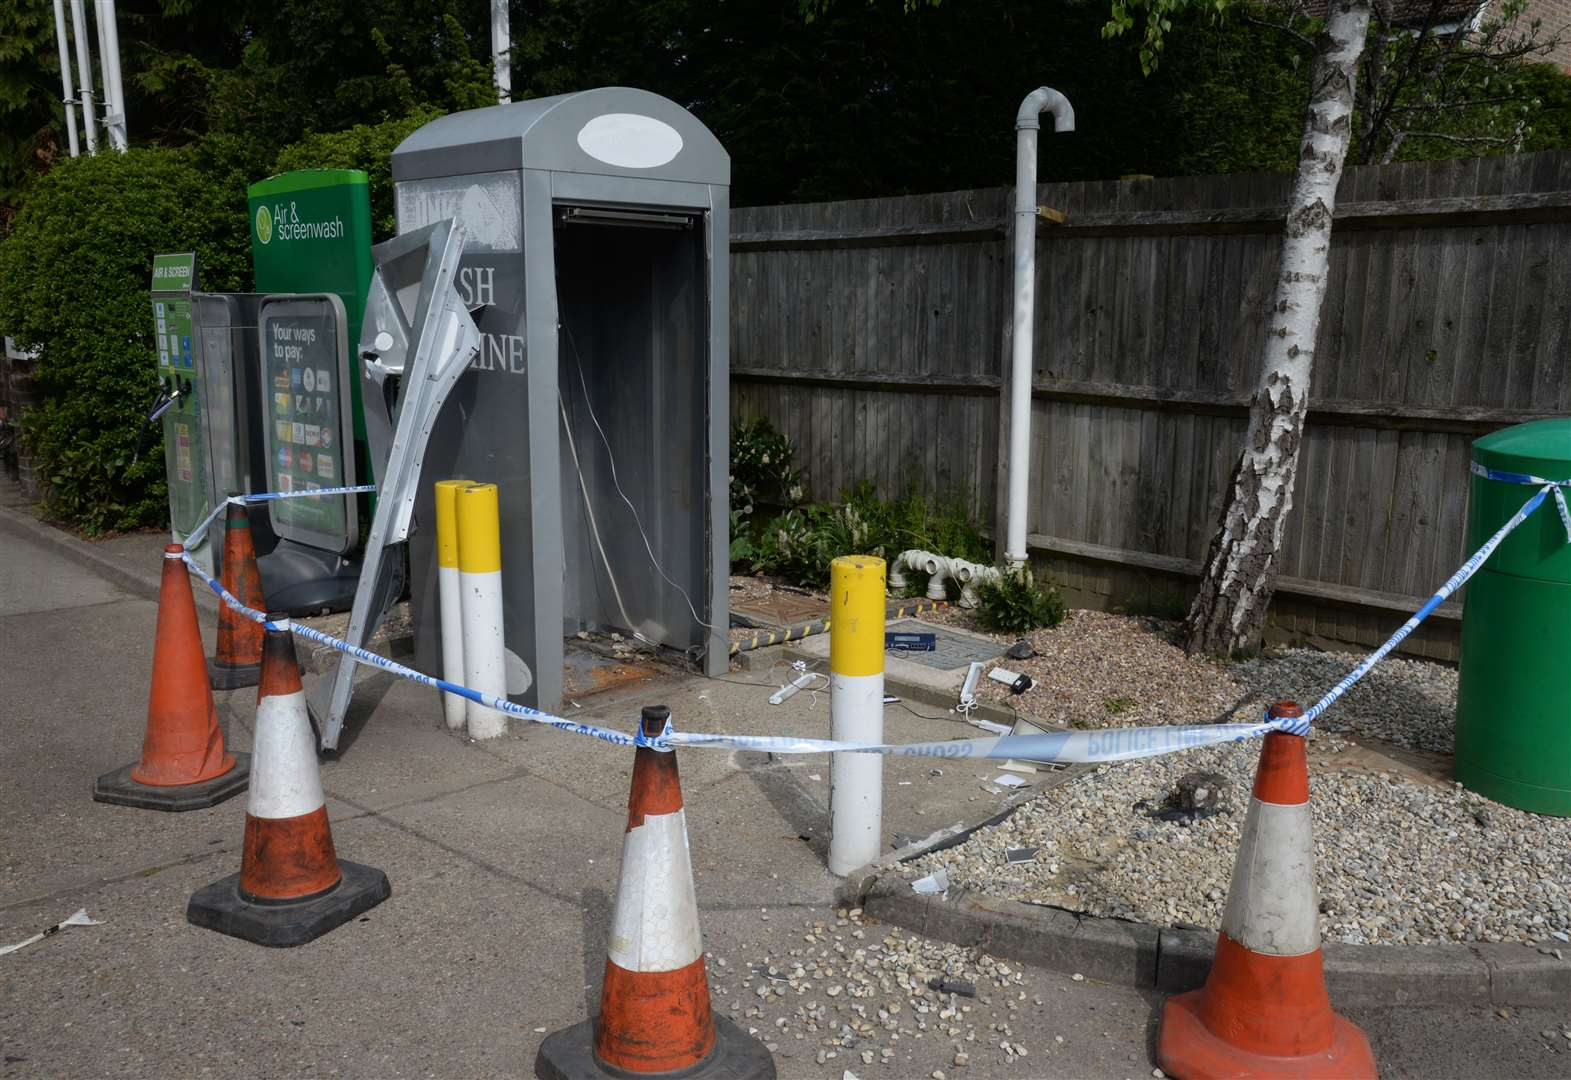 Police appeal after cash machine theft